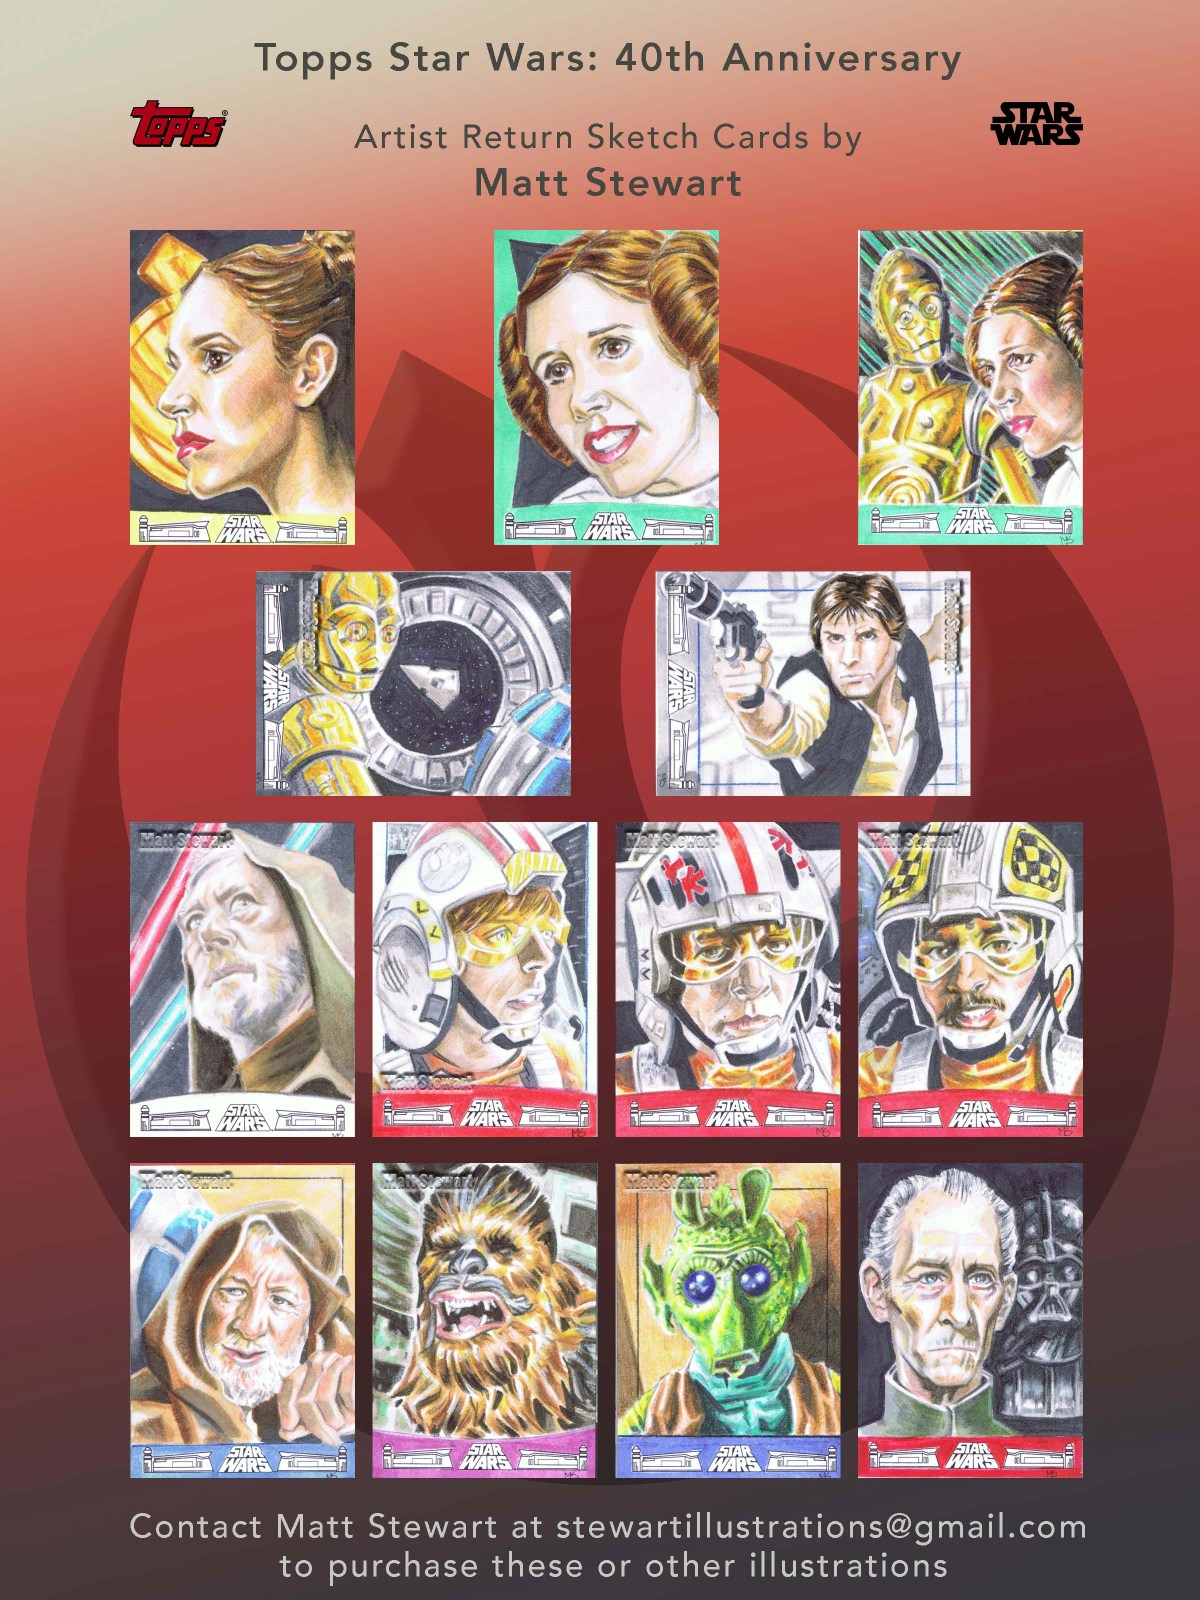 topps star wars 40th anniversary artist return sketch cards images of all 13 drawings